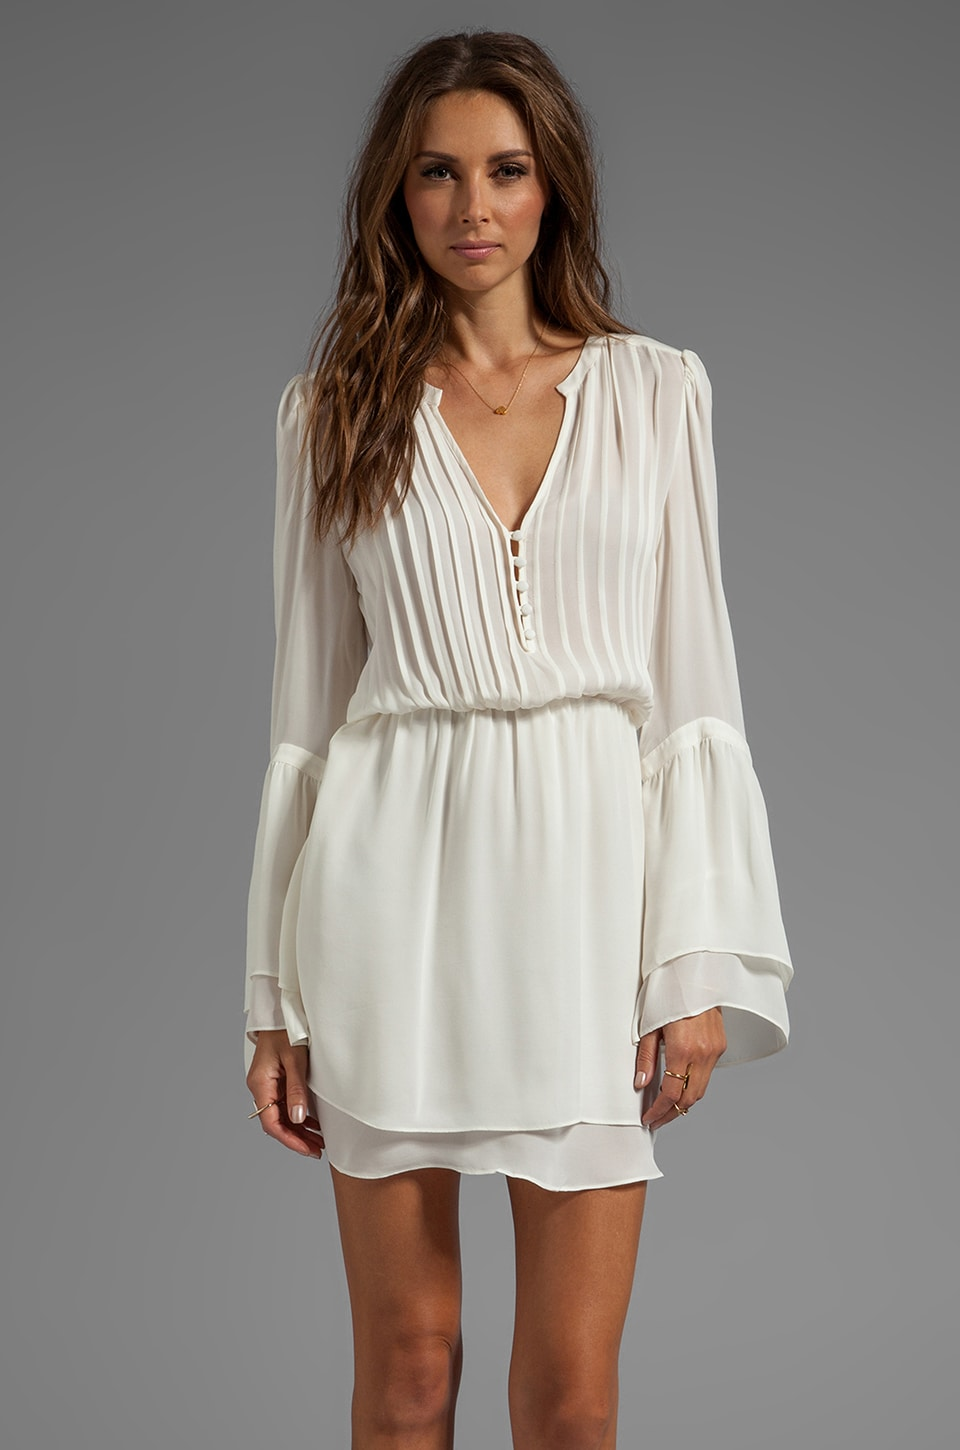 Parker Risa Dress in Creme